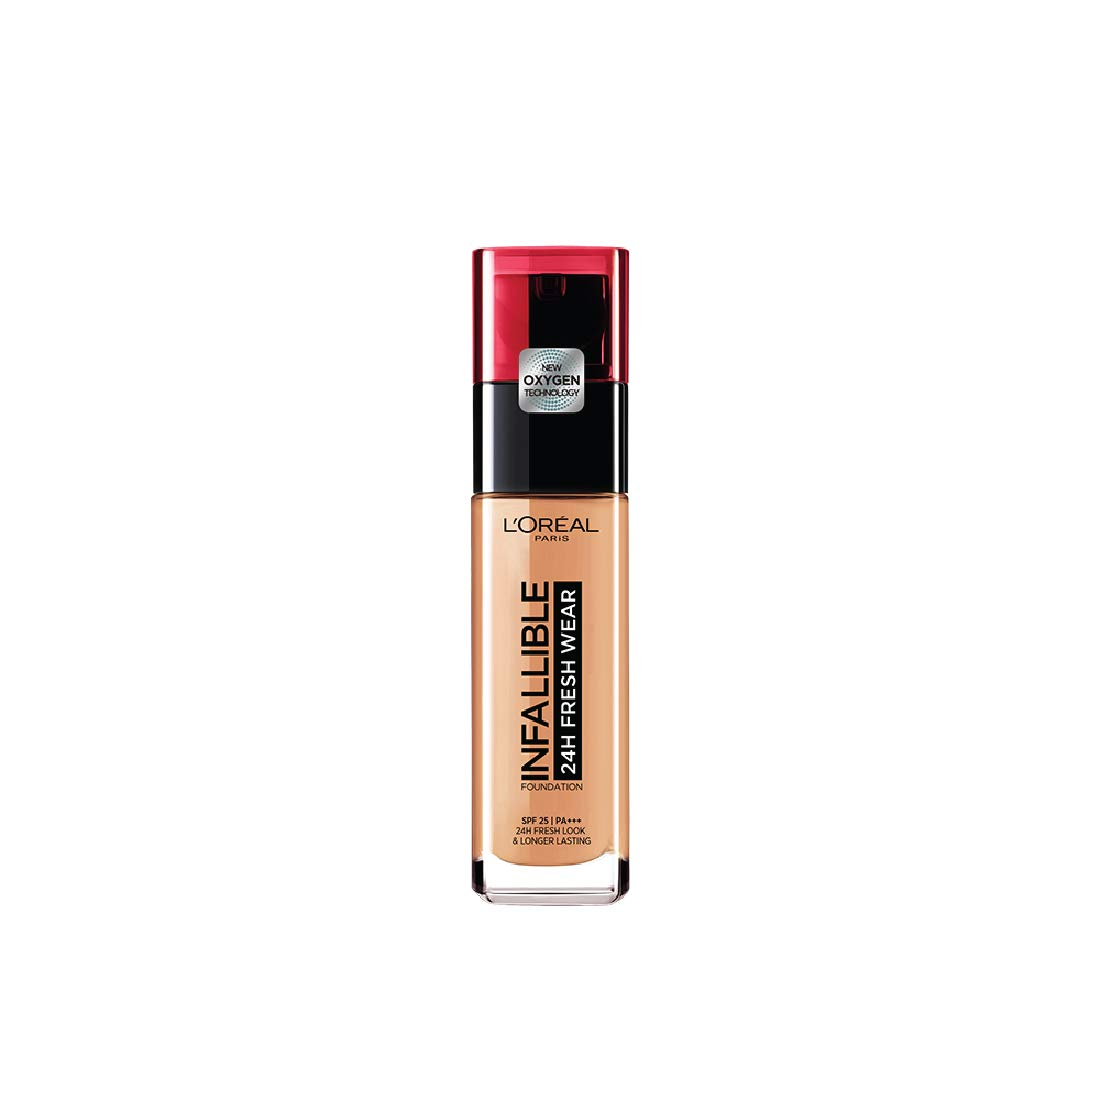 L'Oreal Paris Infallible 24H Fresh Wear Foundation, 150 Radiant Beige, 30 ml